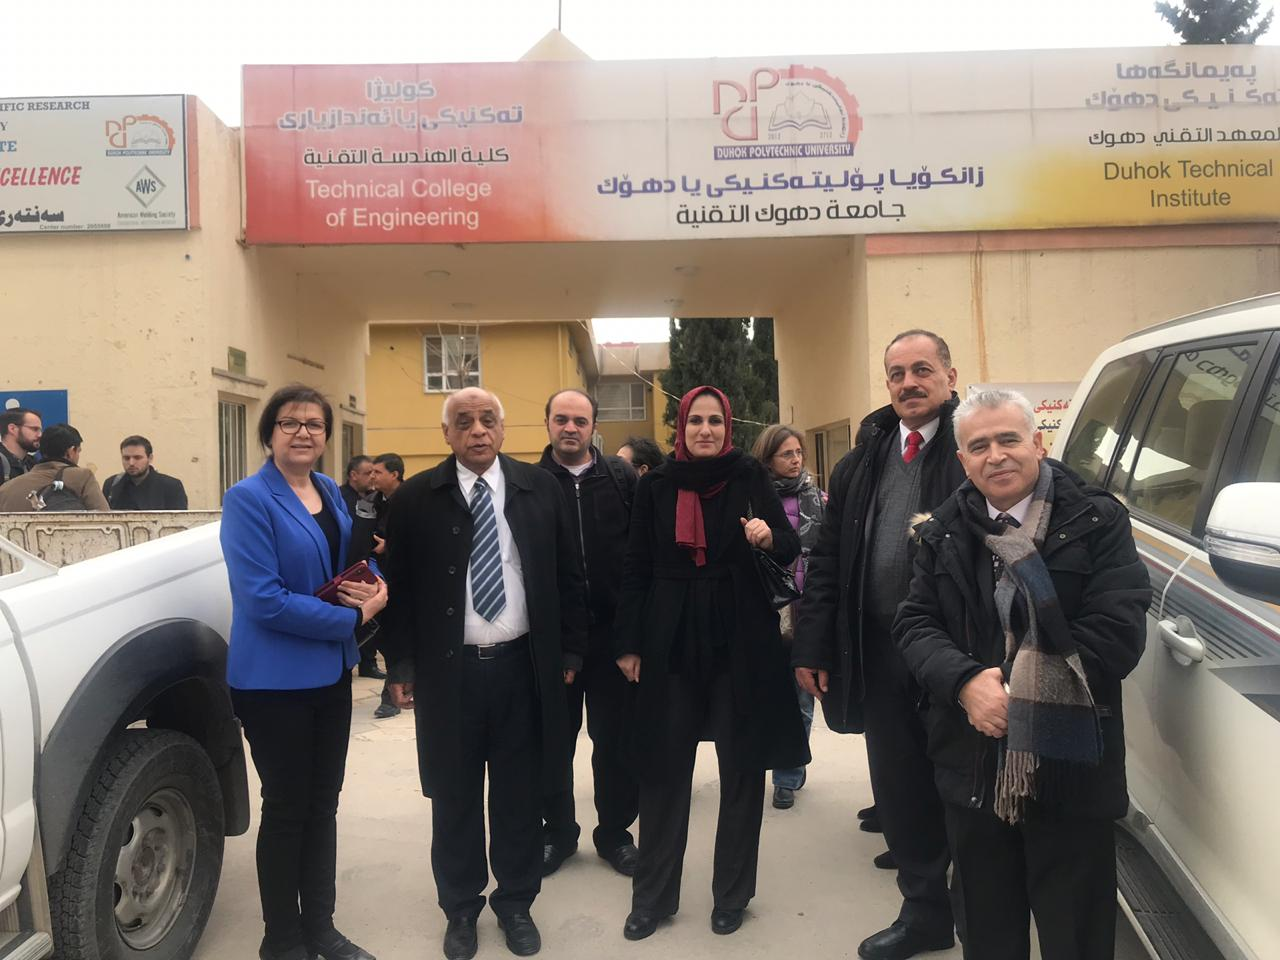 R-SOS Units opening // Duhok (Iraq) - 15 January 2019